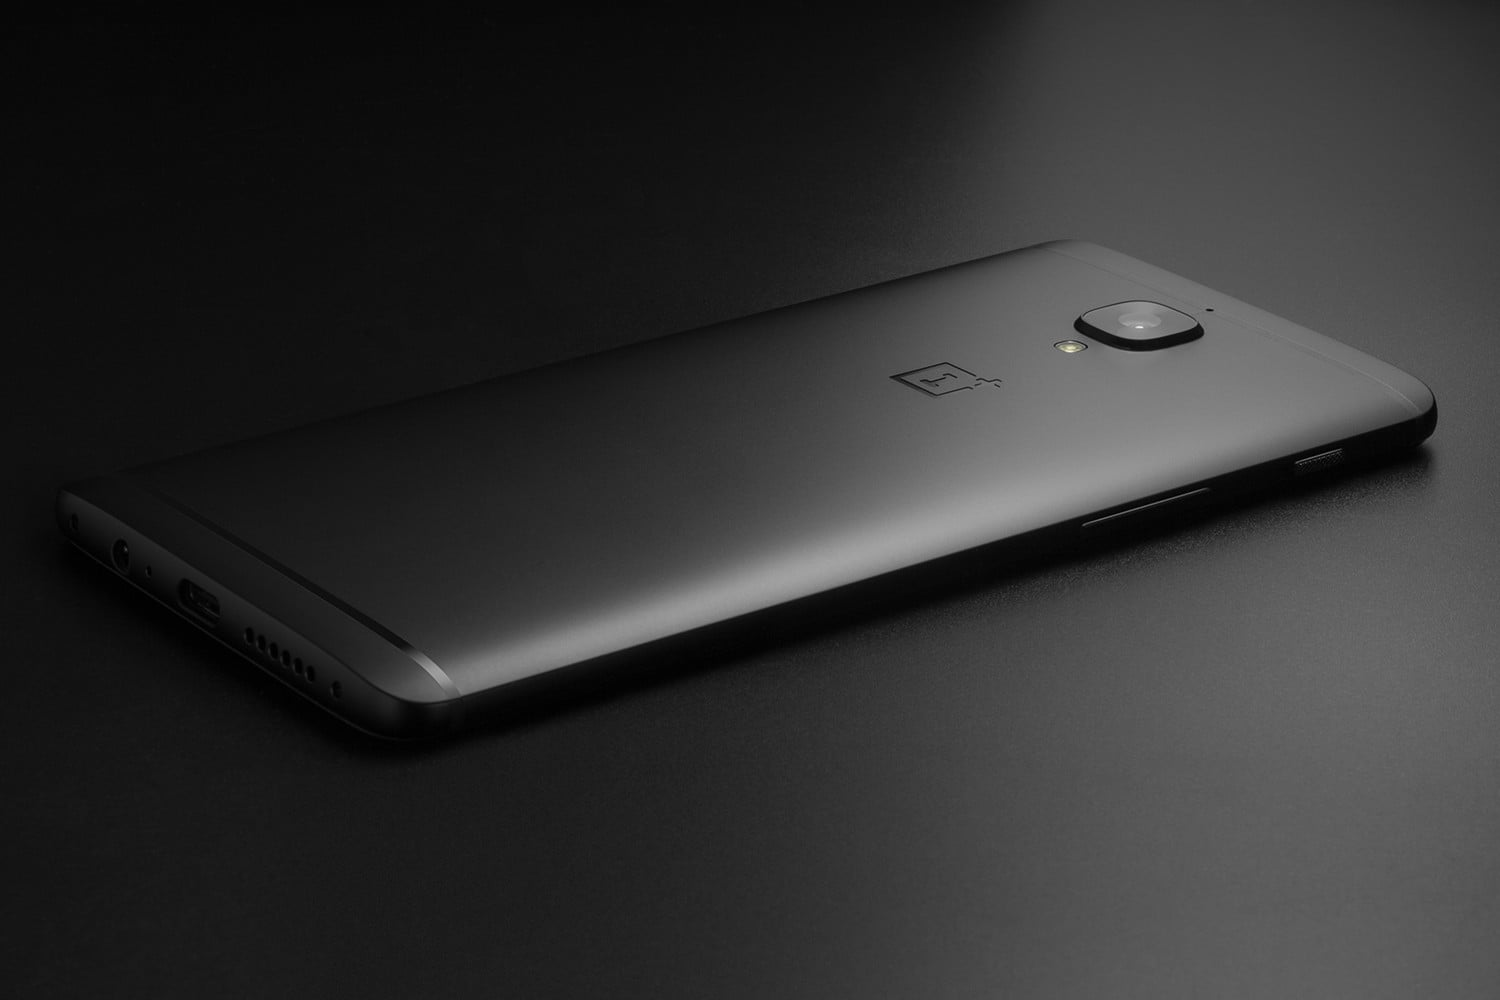 OnePlus 3T limited edition